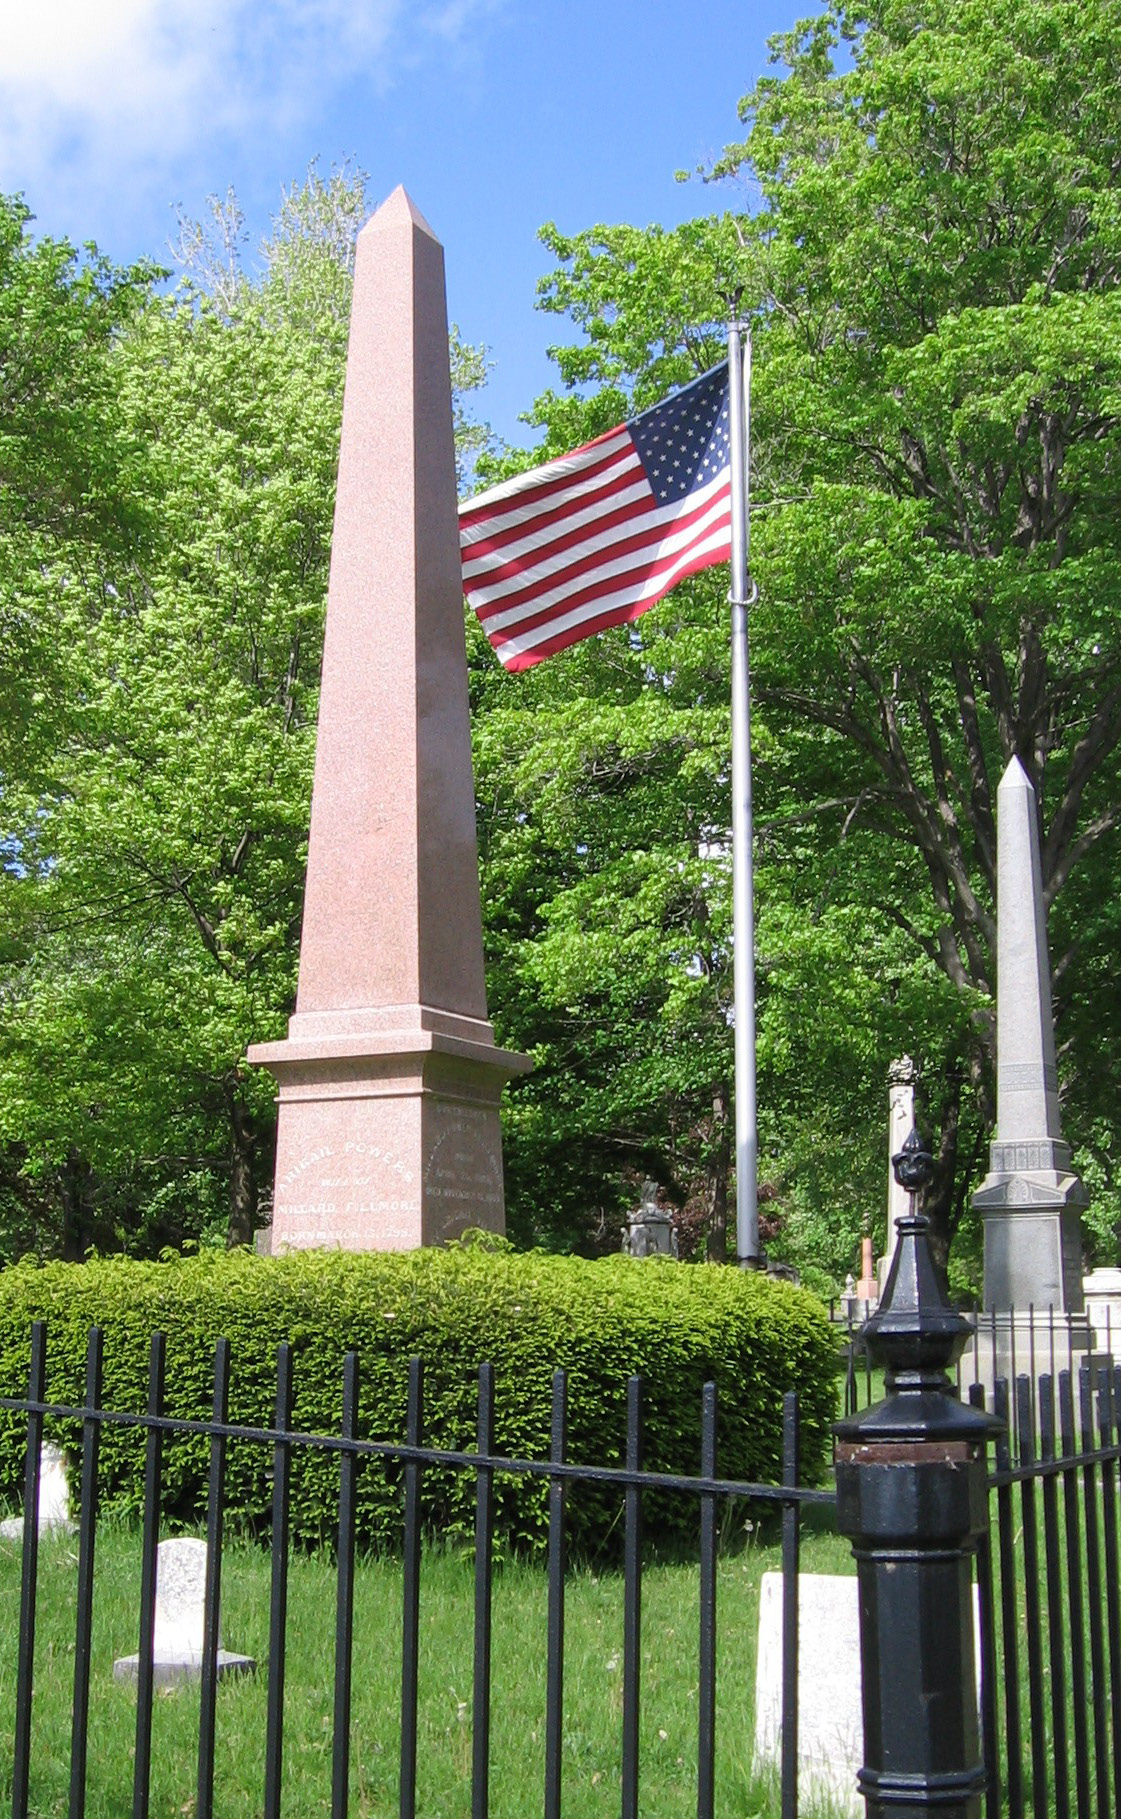 A pink obelisk marks Millard Fillmore's gravesite at Forest Lawn Cemetery in Buffalo, New York. Photo taken on May 19, 2006.